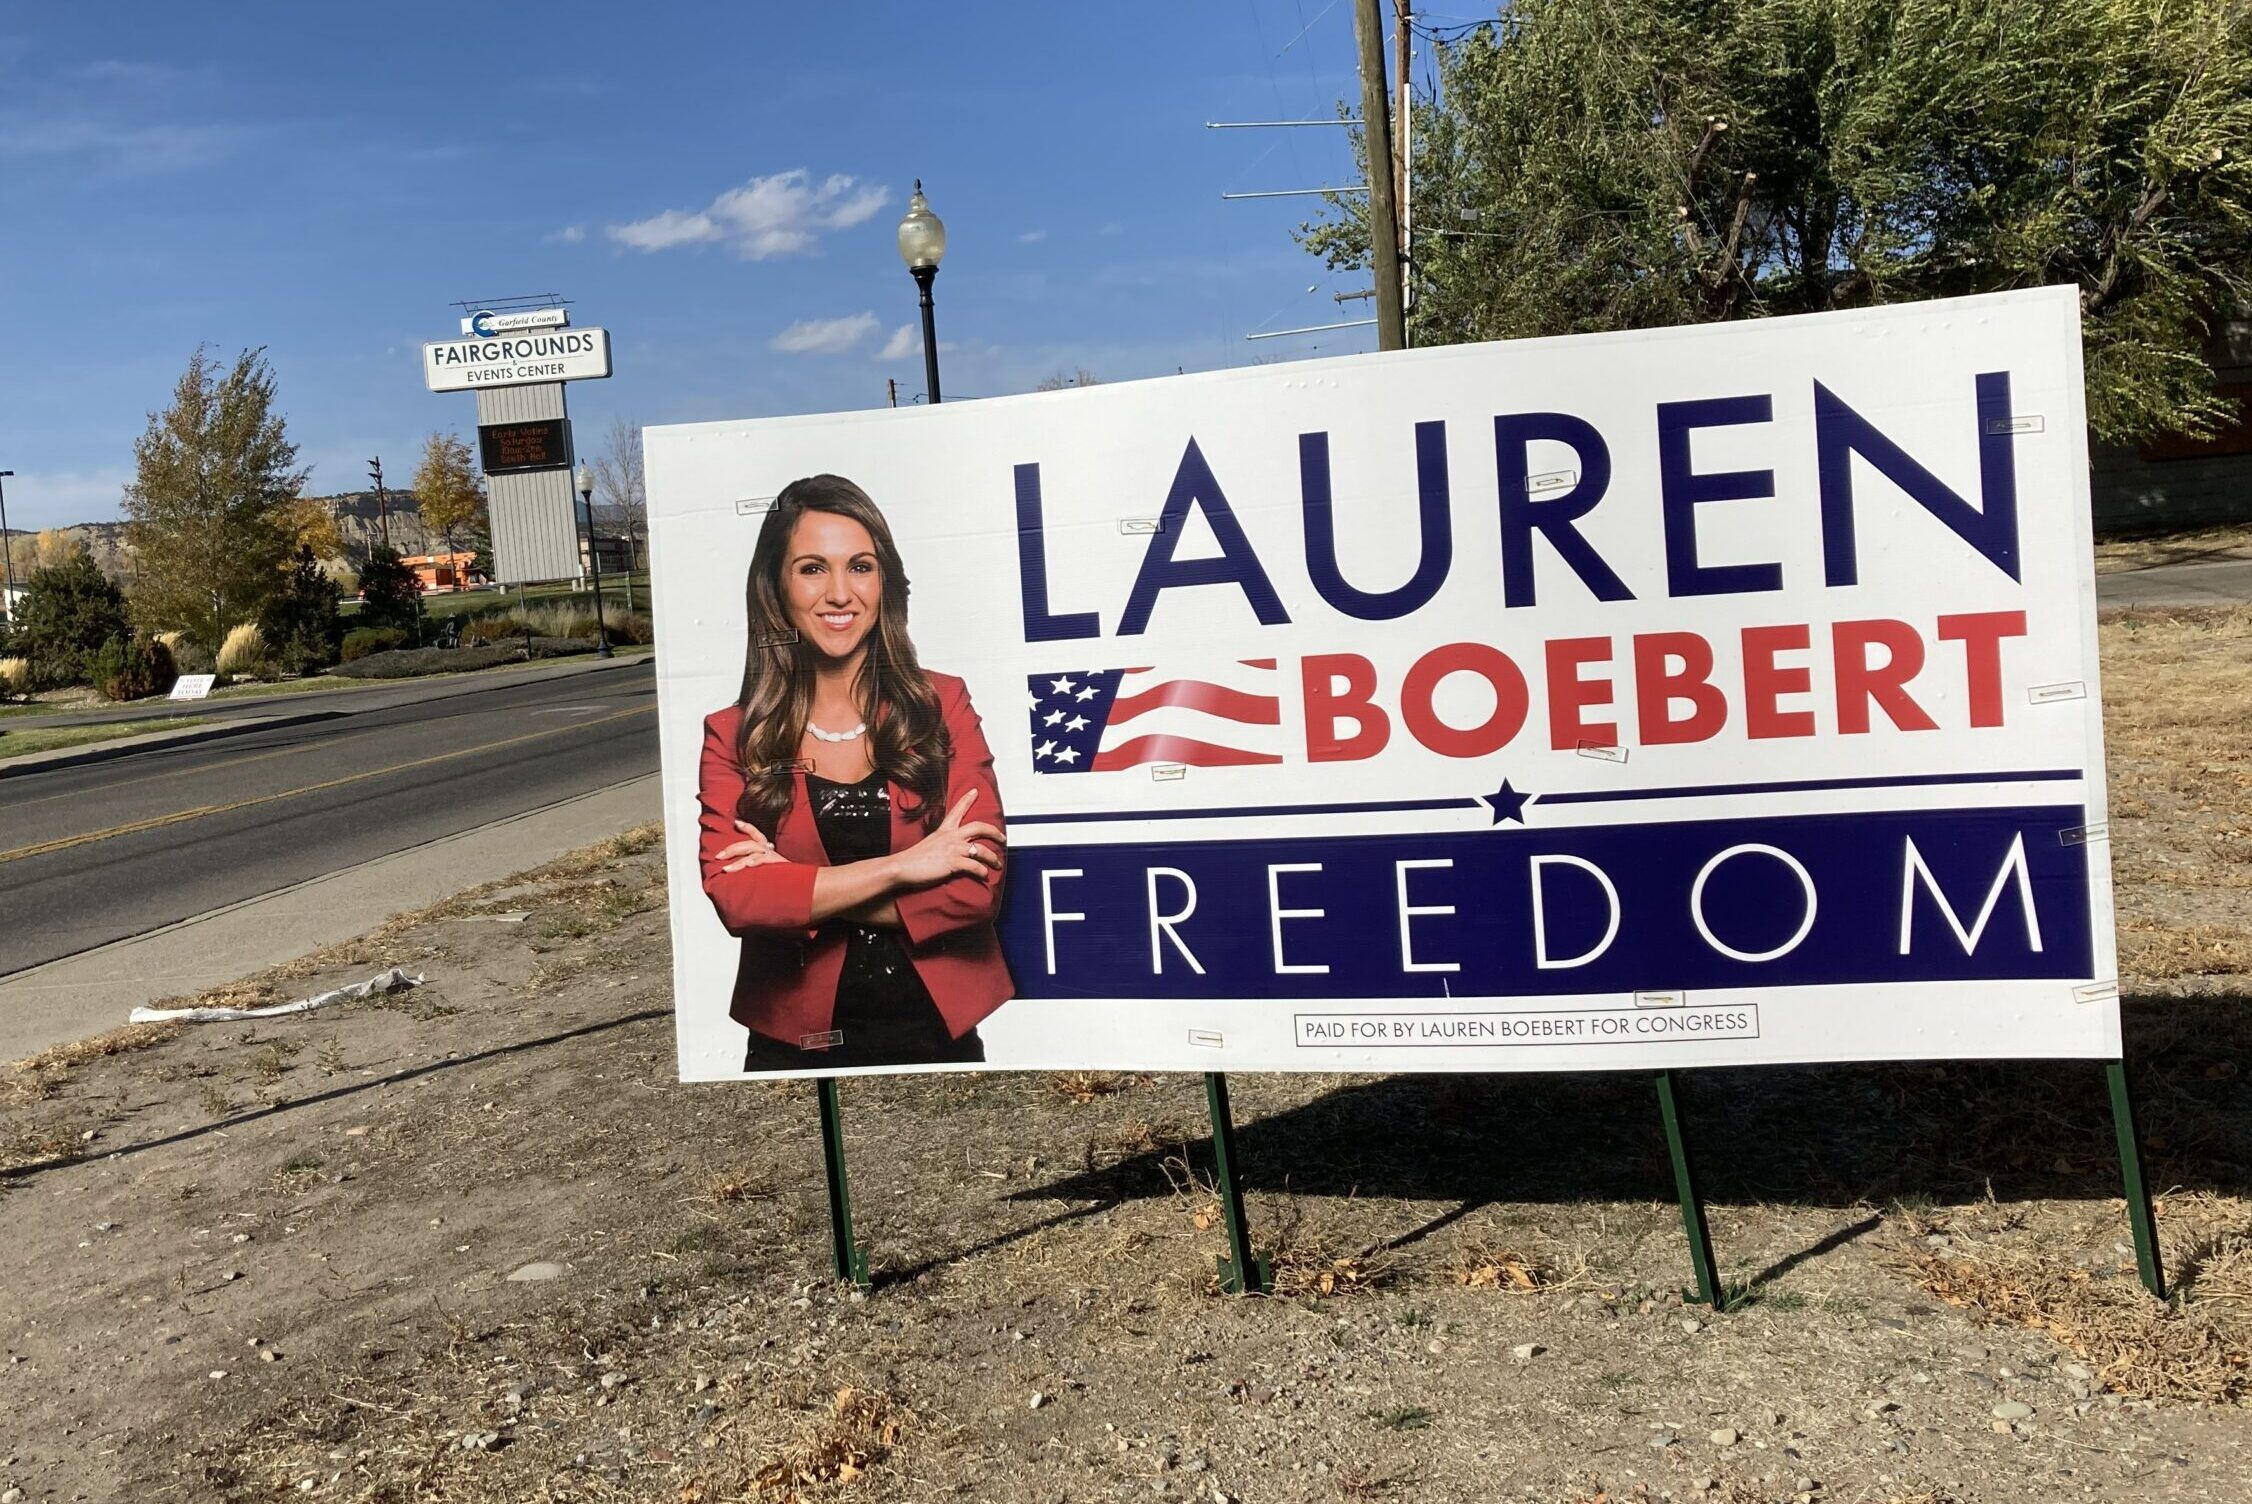 Signs for Lauren Boebert can be found all across Colorados 3rd Congressional District.